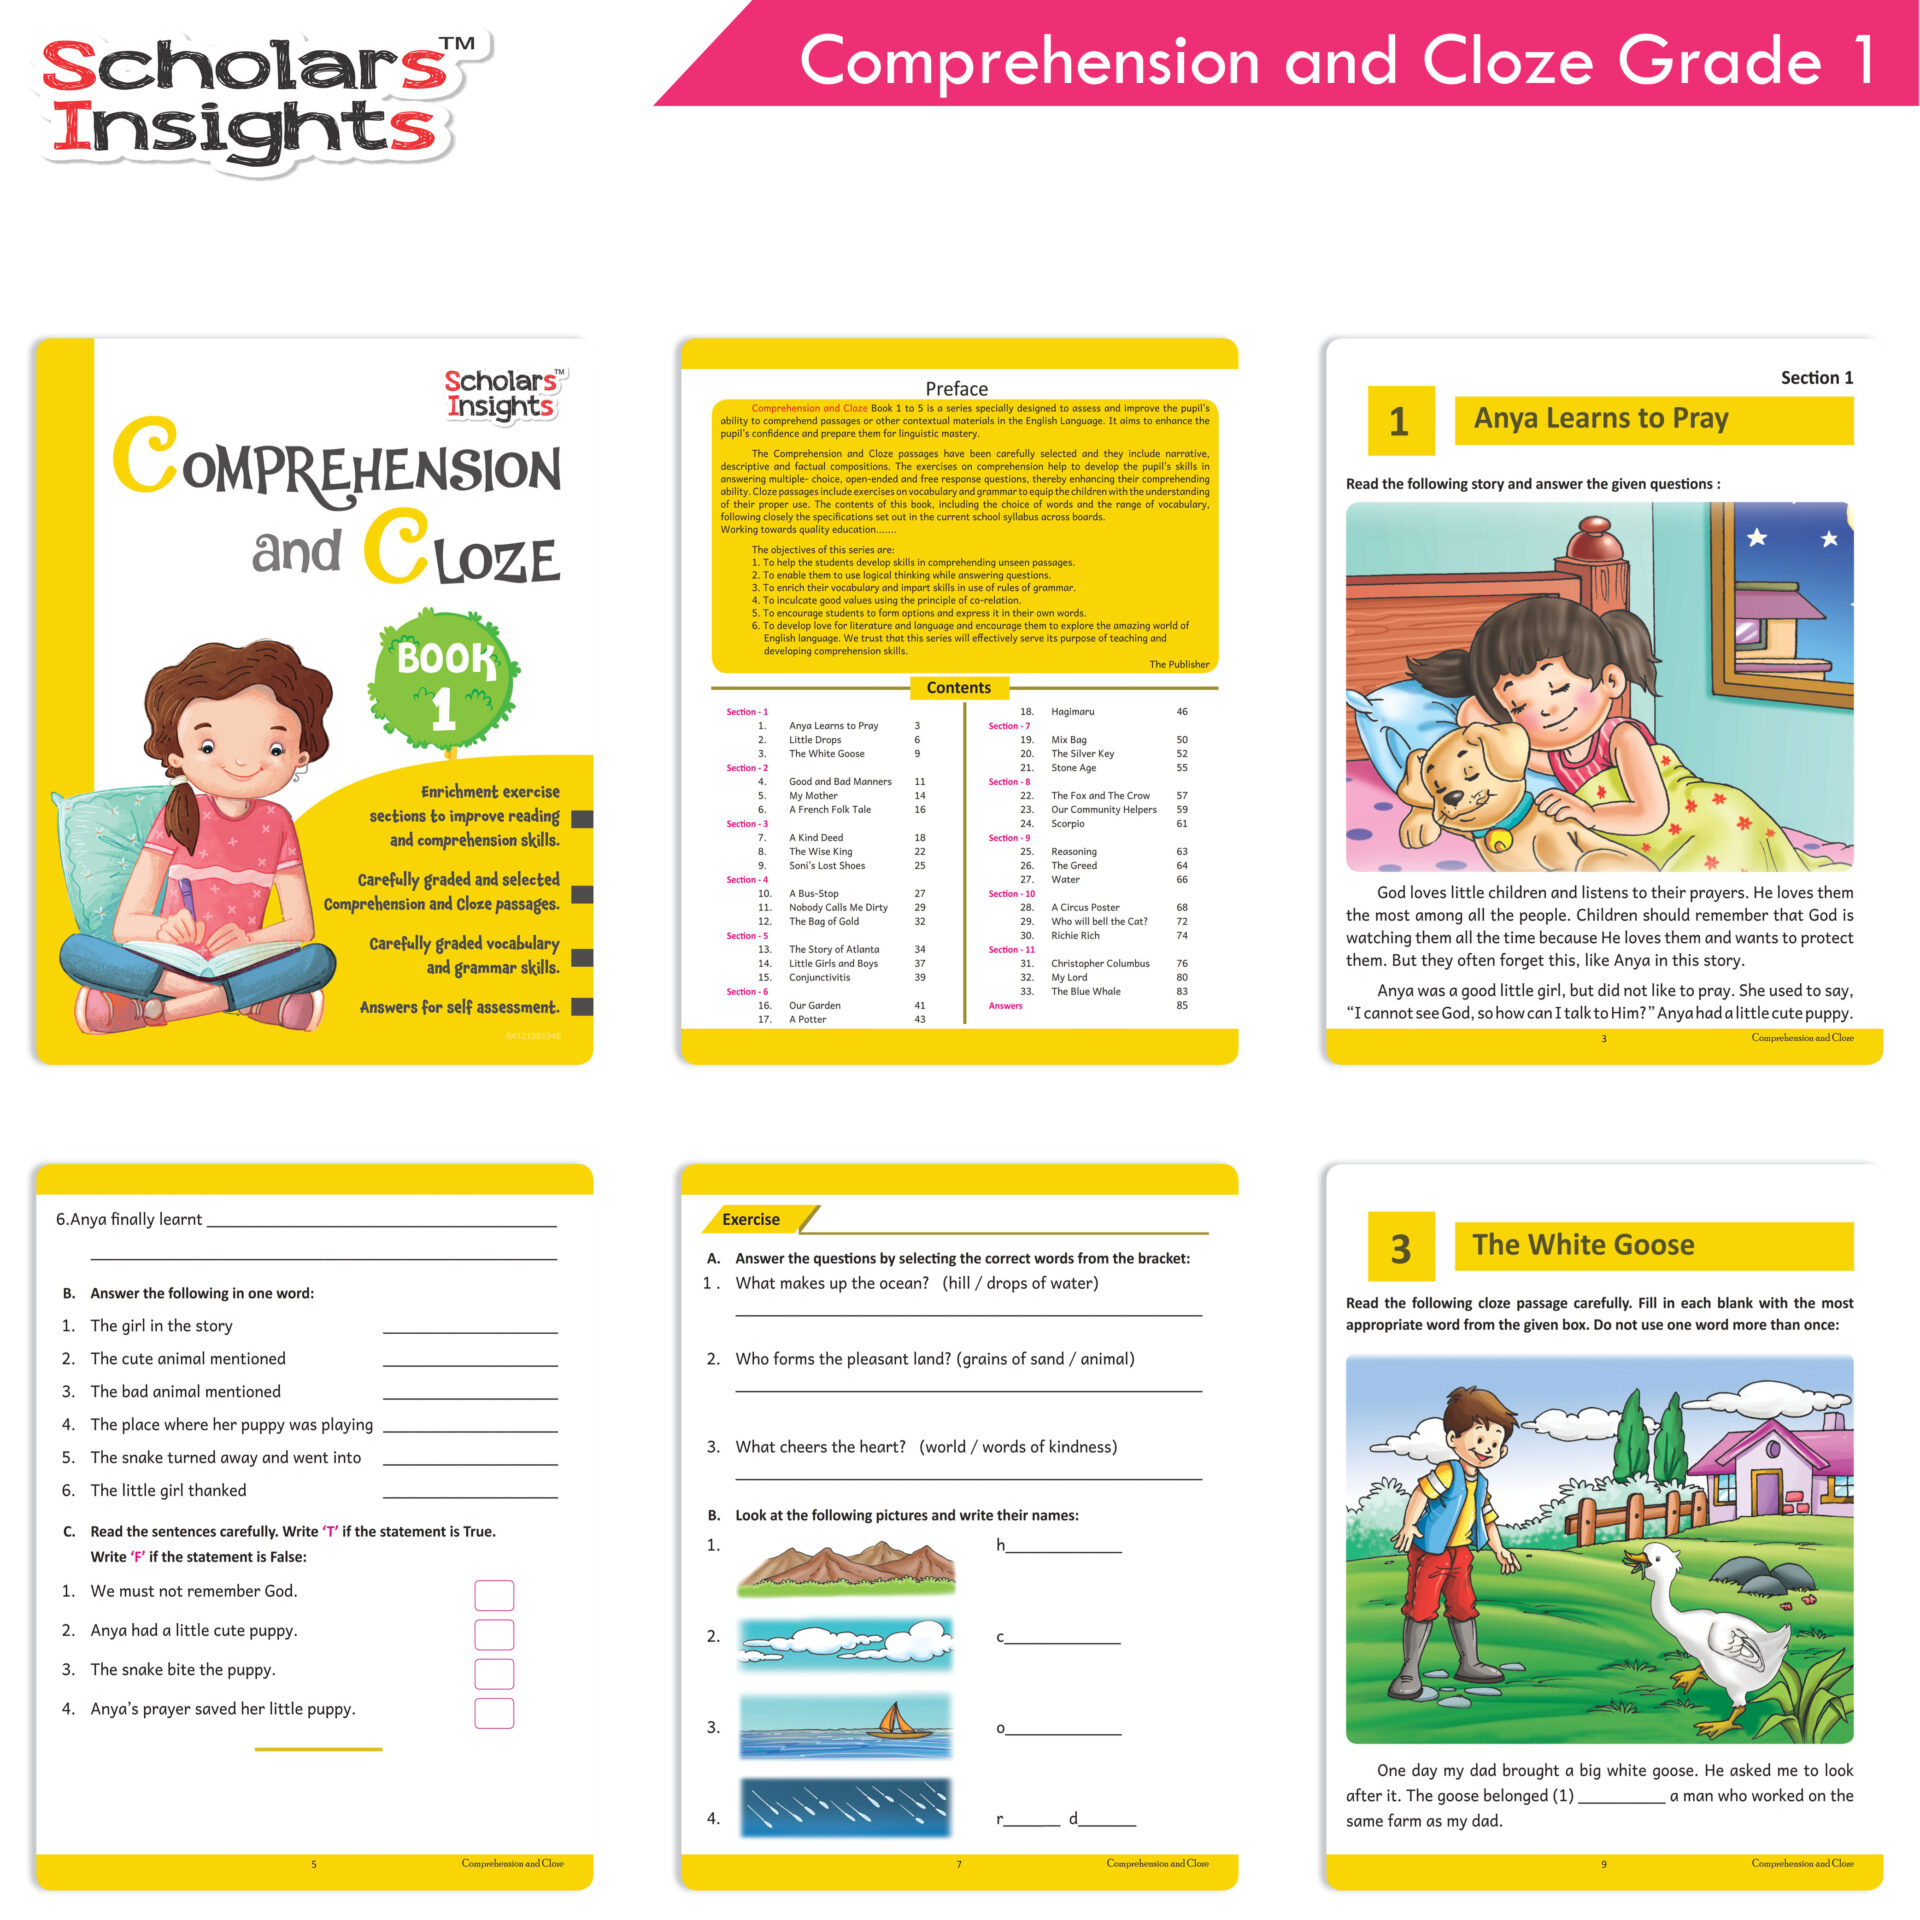 Scholars Insights Comprehension and Cloze Grade 1 3 1